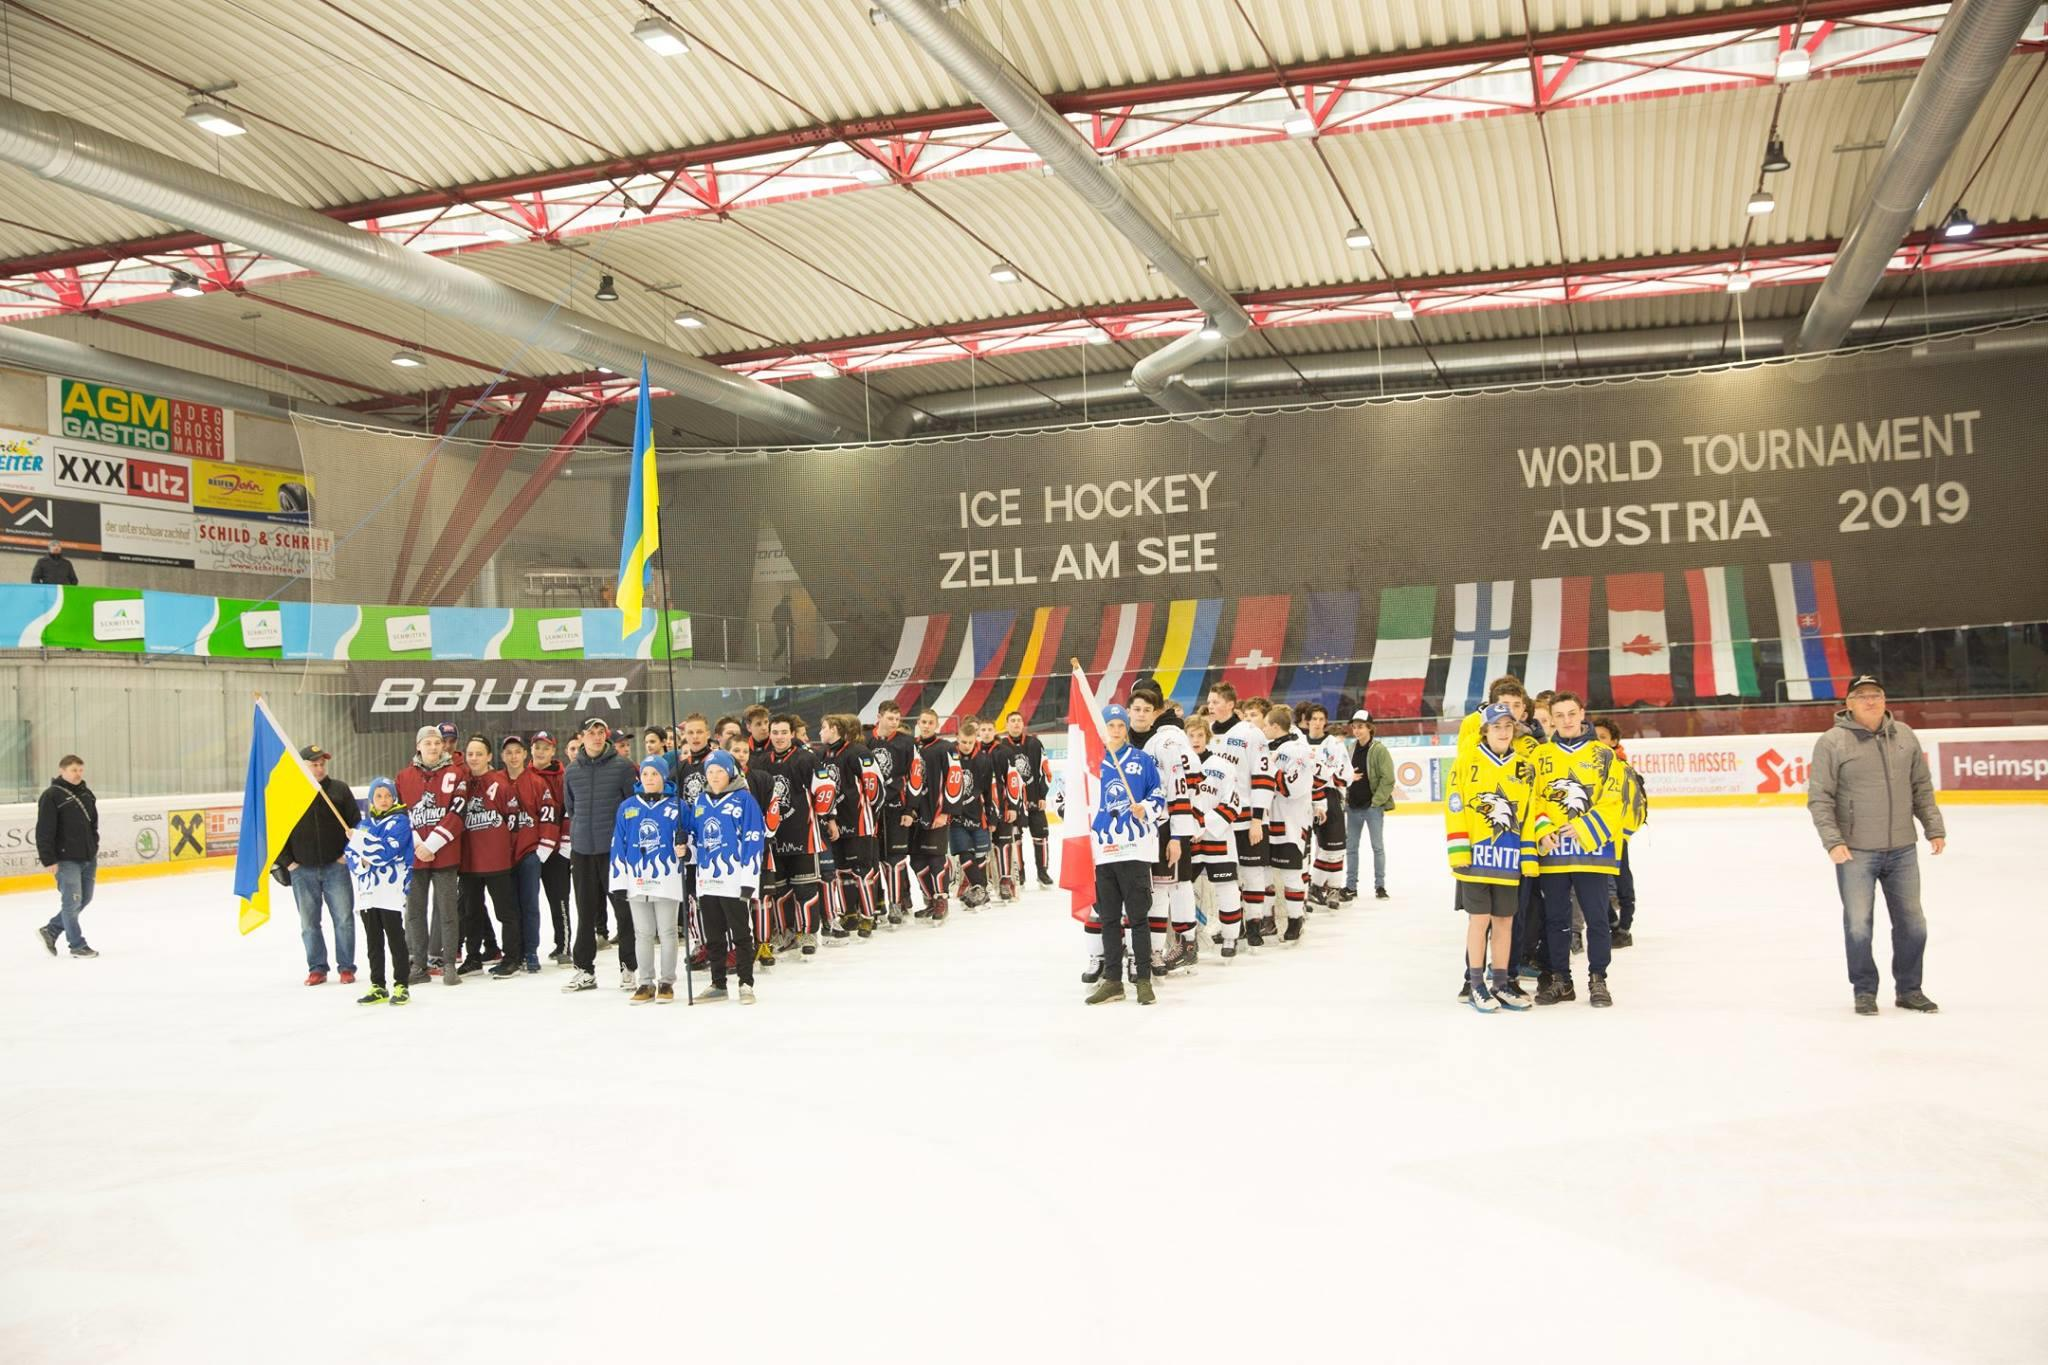 Icehockey World Tournament 2019 - 13/04/2020